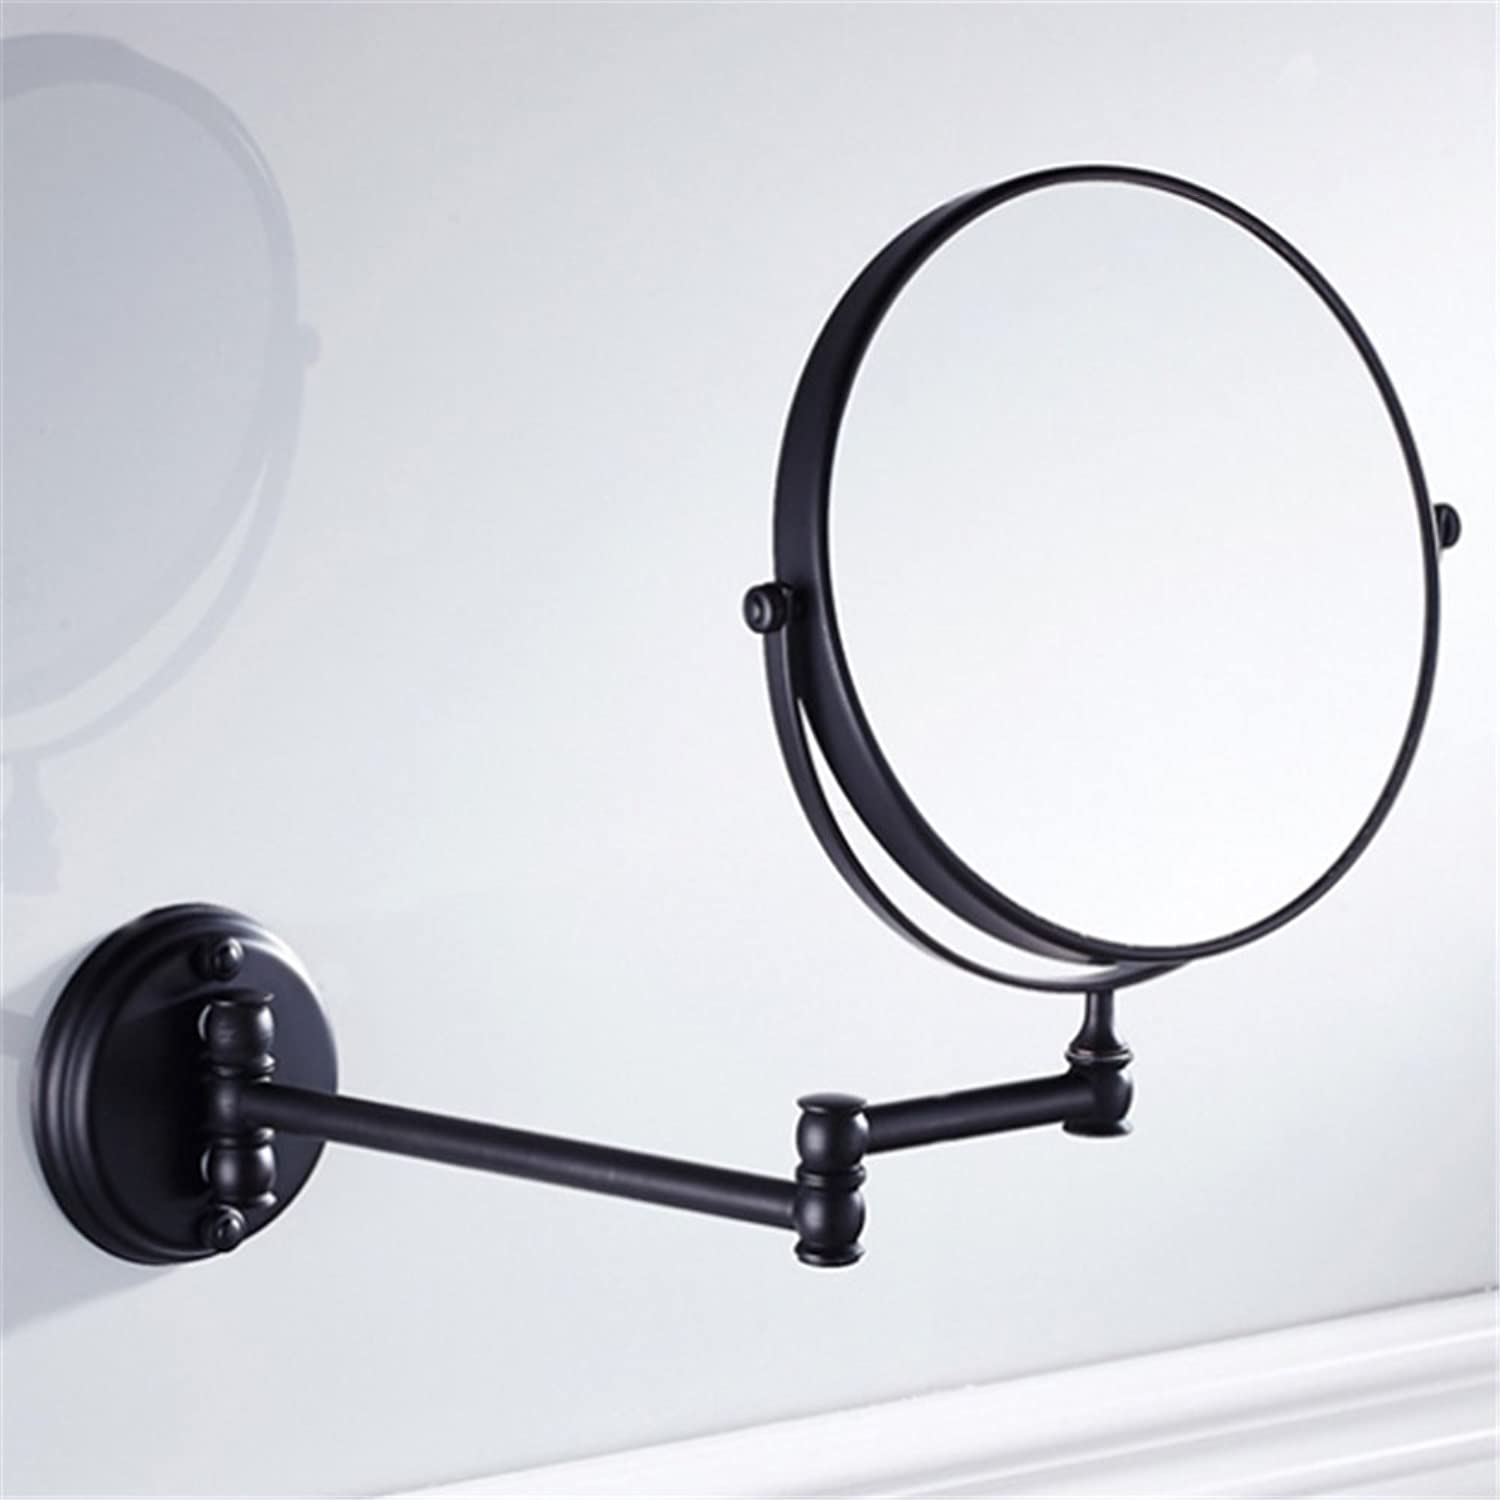 Wall Mounted Makeup Mirror Double Sided With 3X Magnification,No light,Old Rubbed Bronze